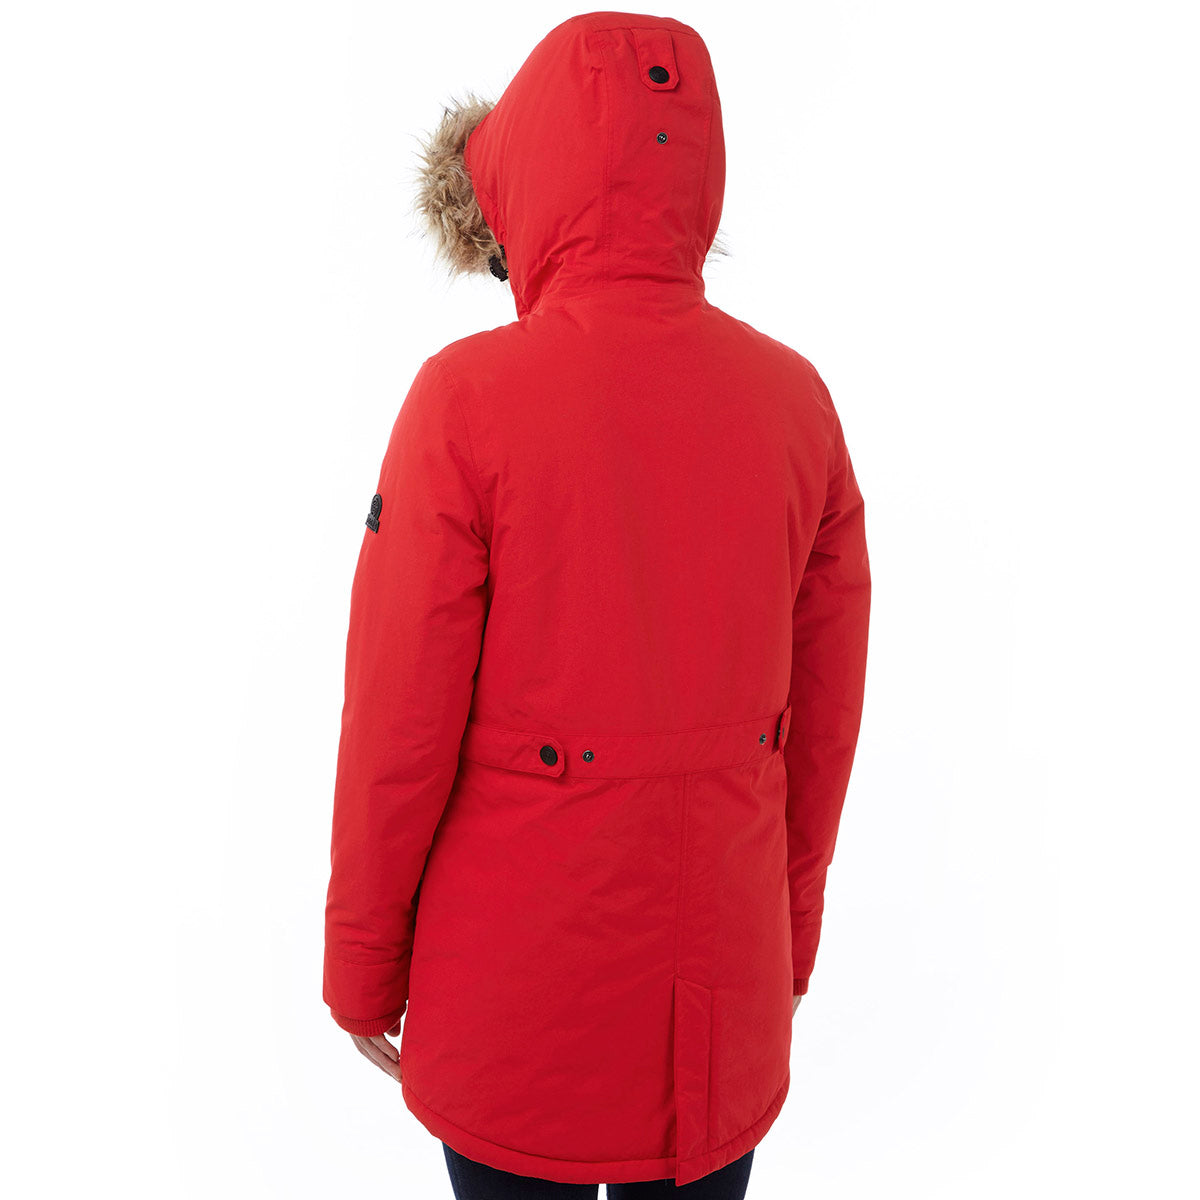 Superior Womens Milatex Jacket - Rouge Red image 4